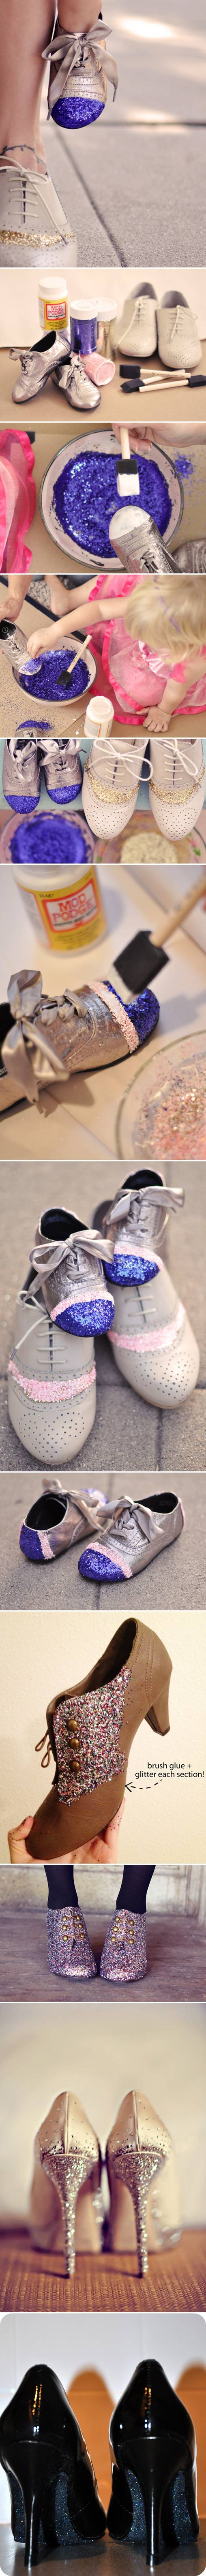 How to make nice Glitter Shoes step by step DIY tutorial instructions